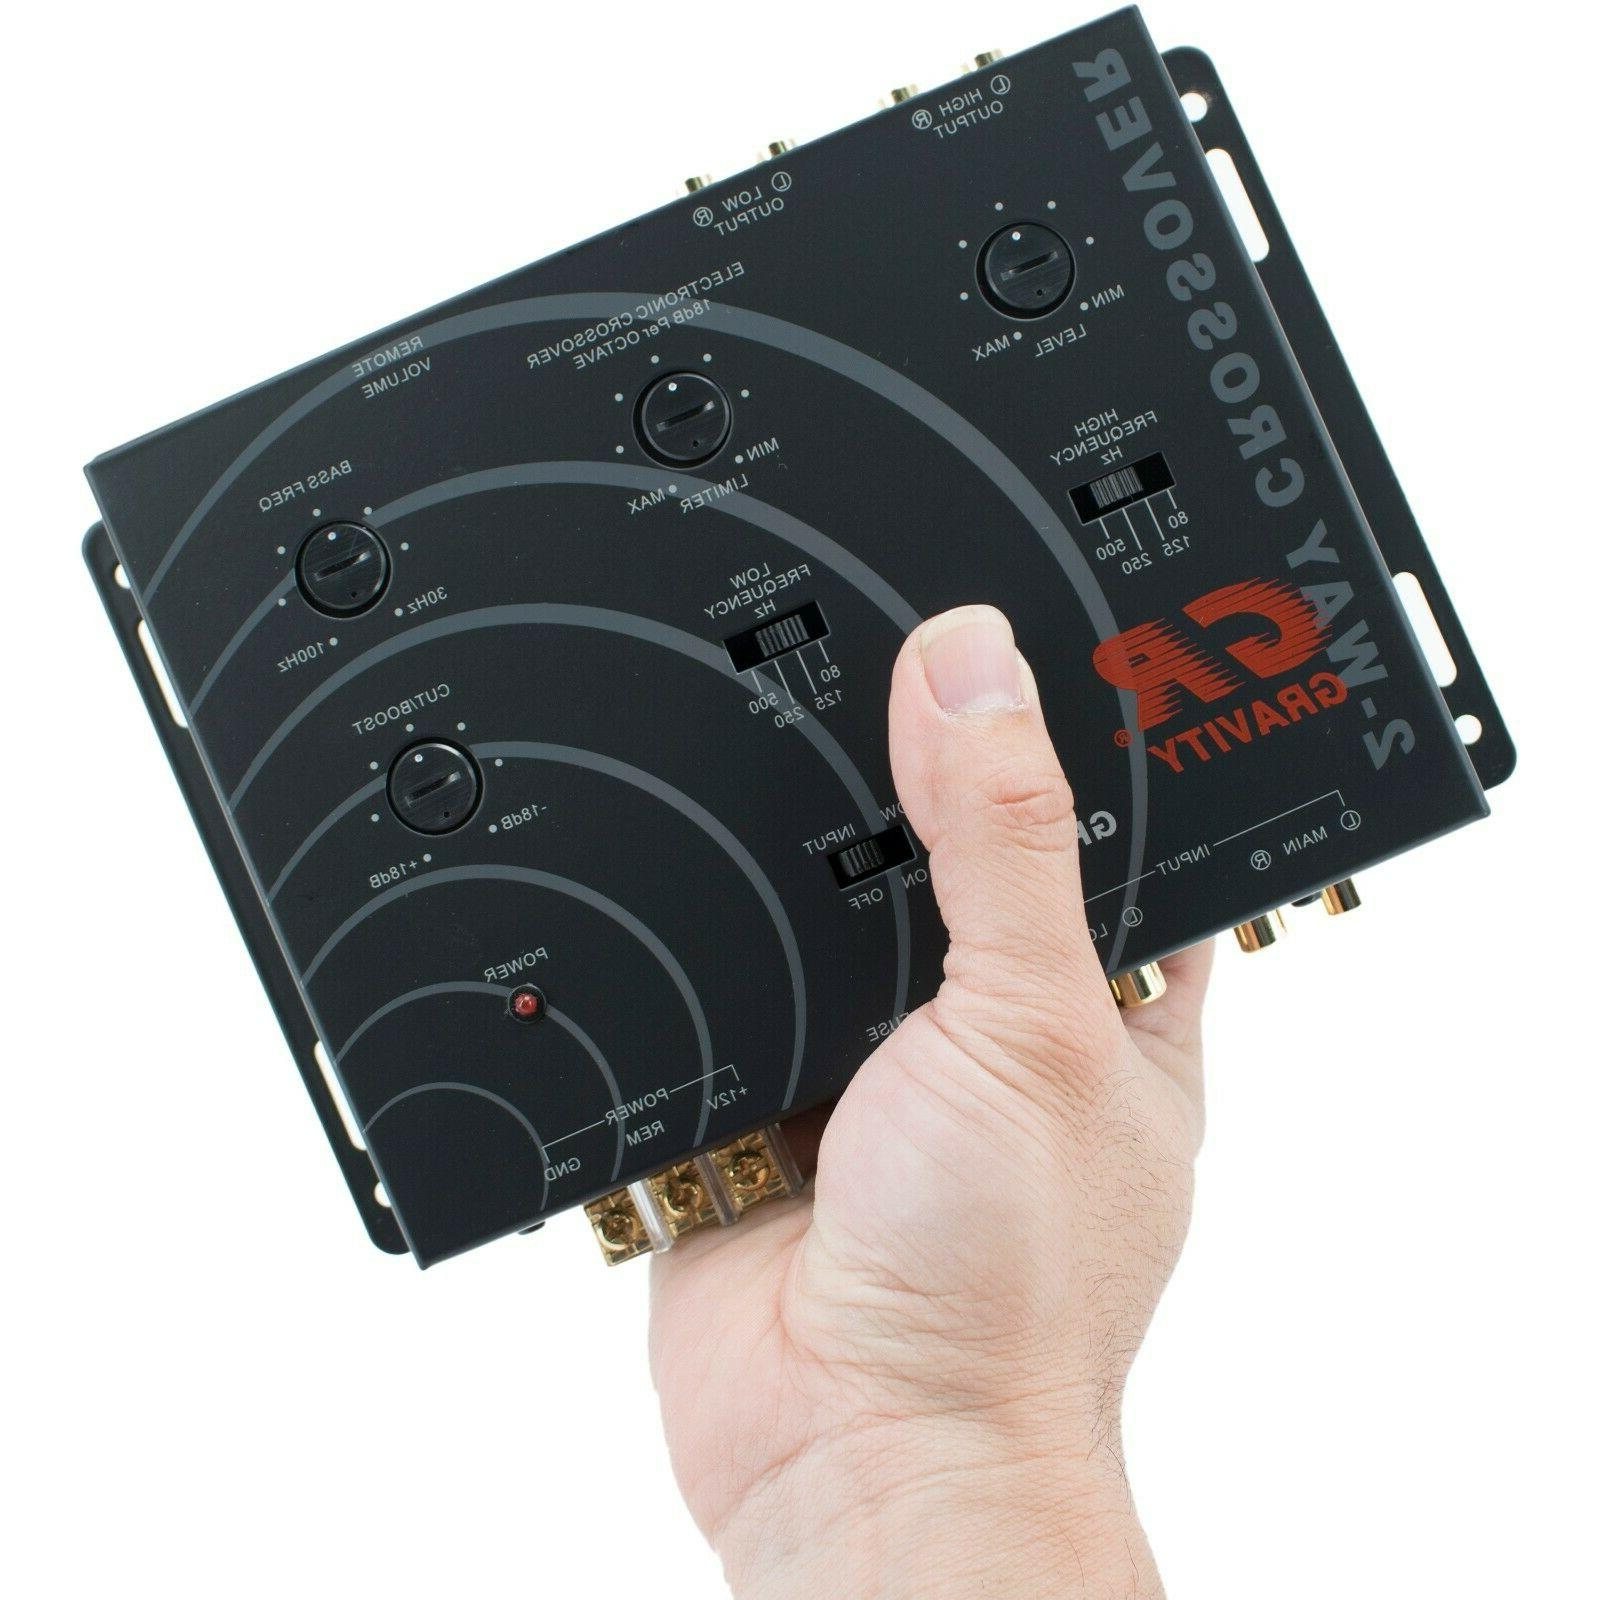 SoundXtreme AX2200 Crossover For / Speakers